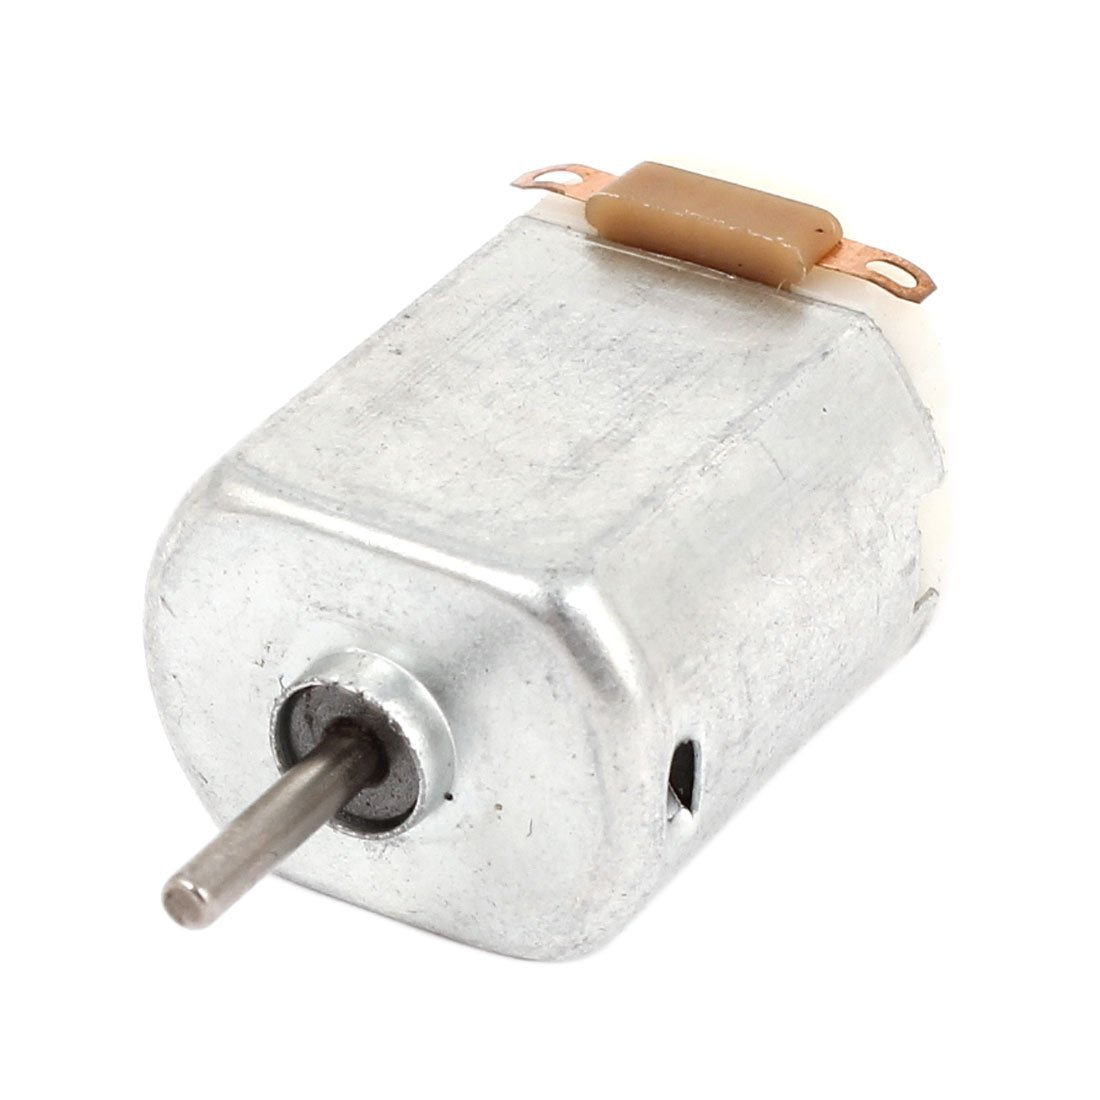 3v Mini Electric Motor 18000 Rpm Dc 1.5v Diy Toy Hobby Quell Summer Thirst